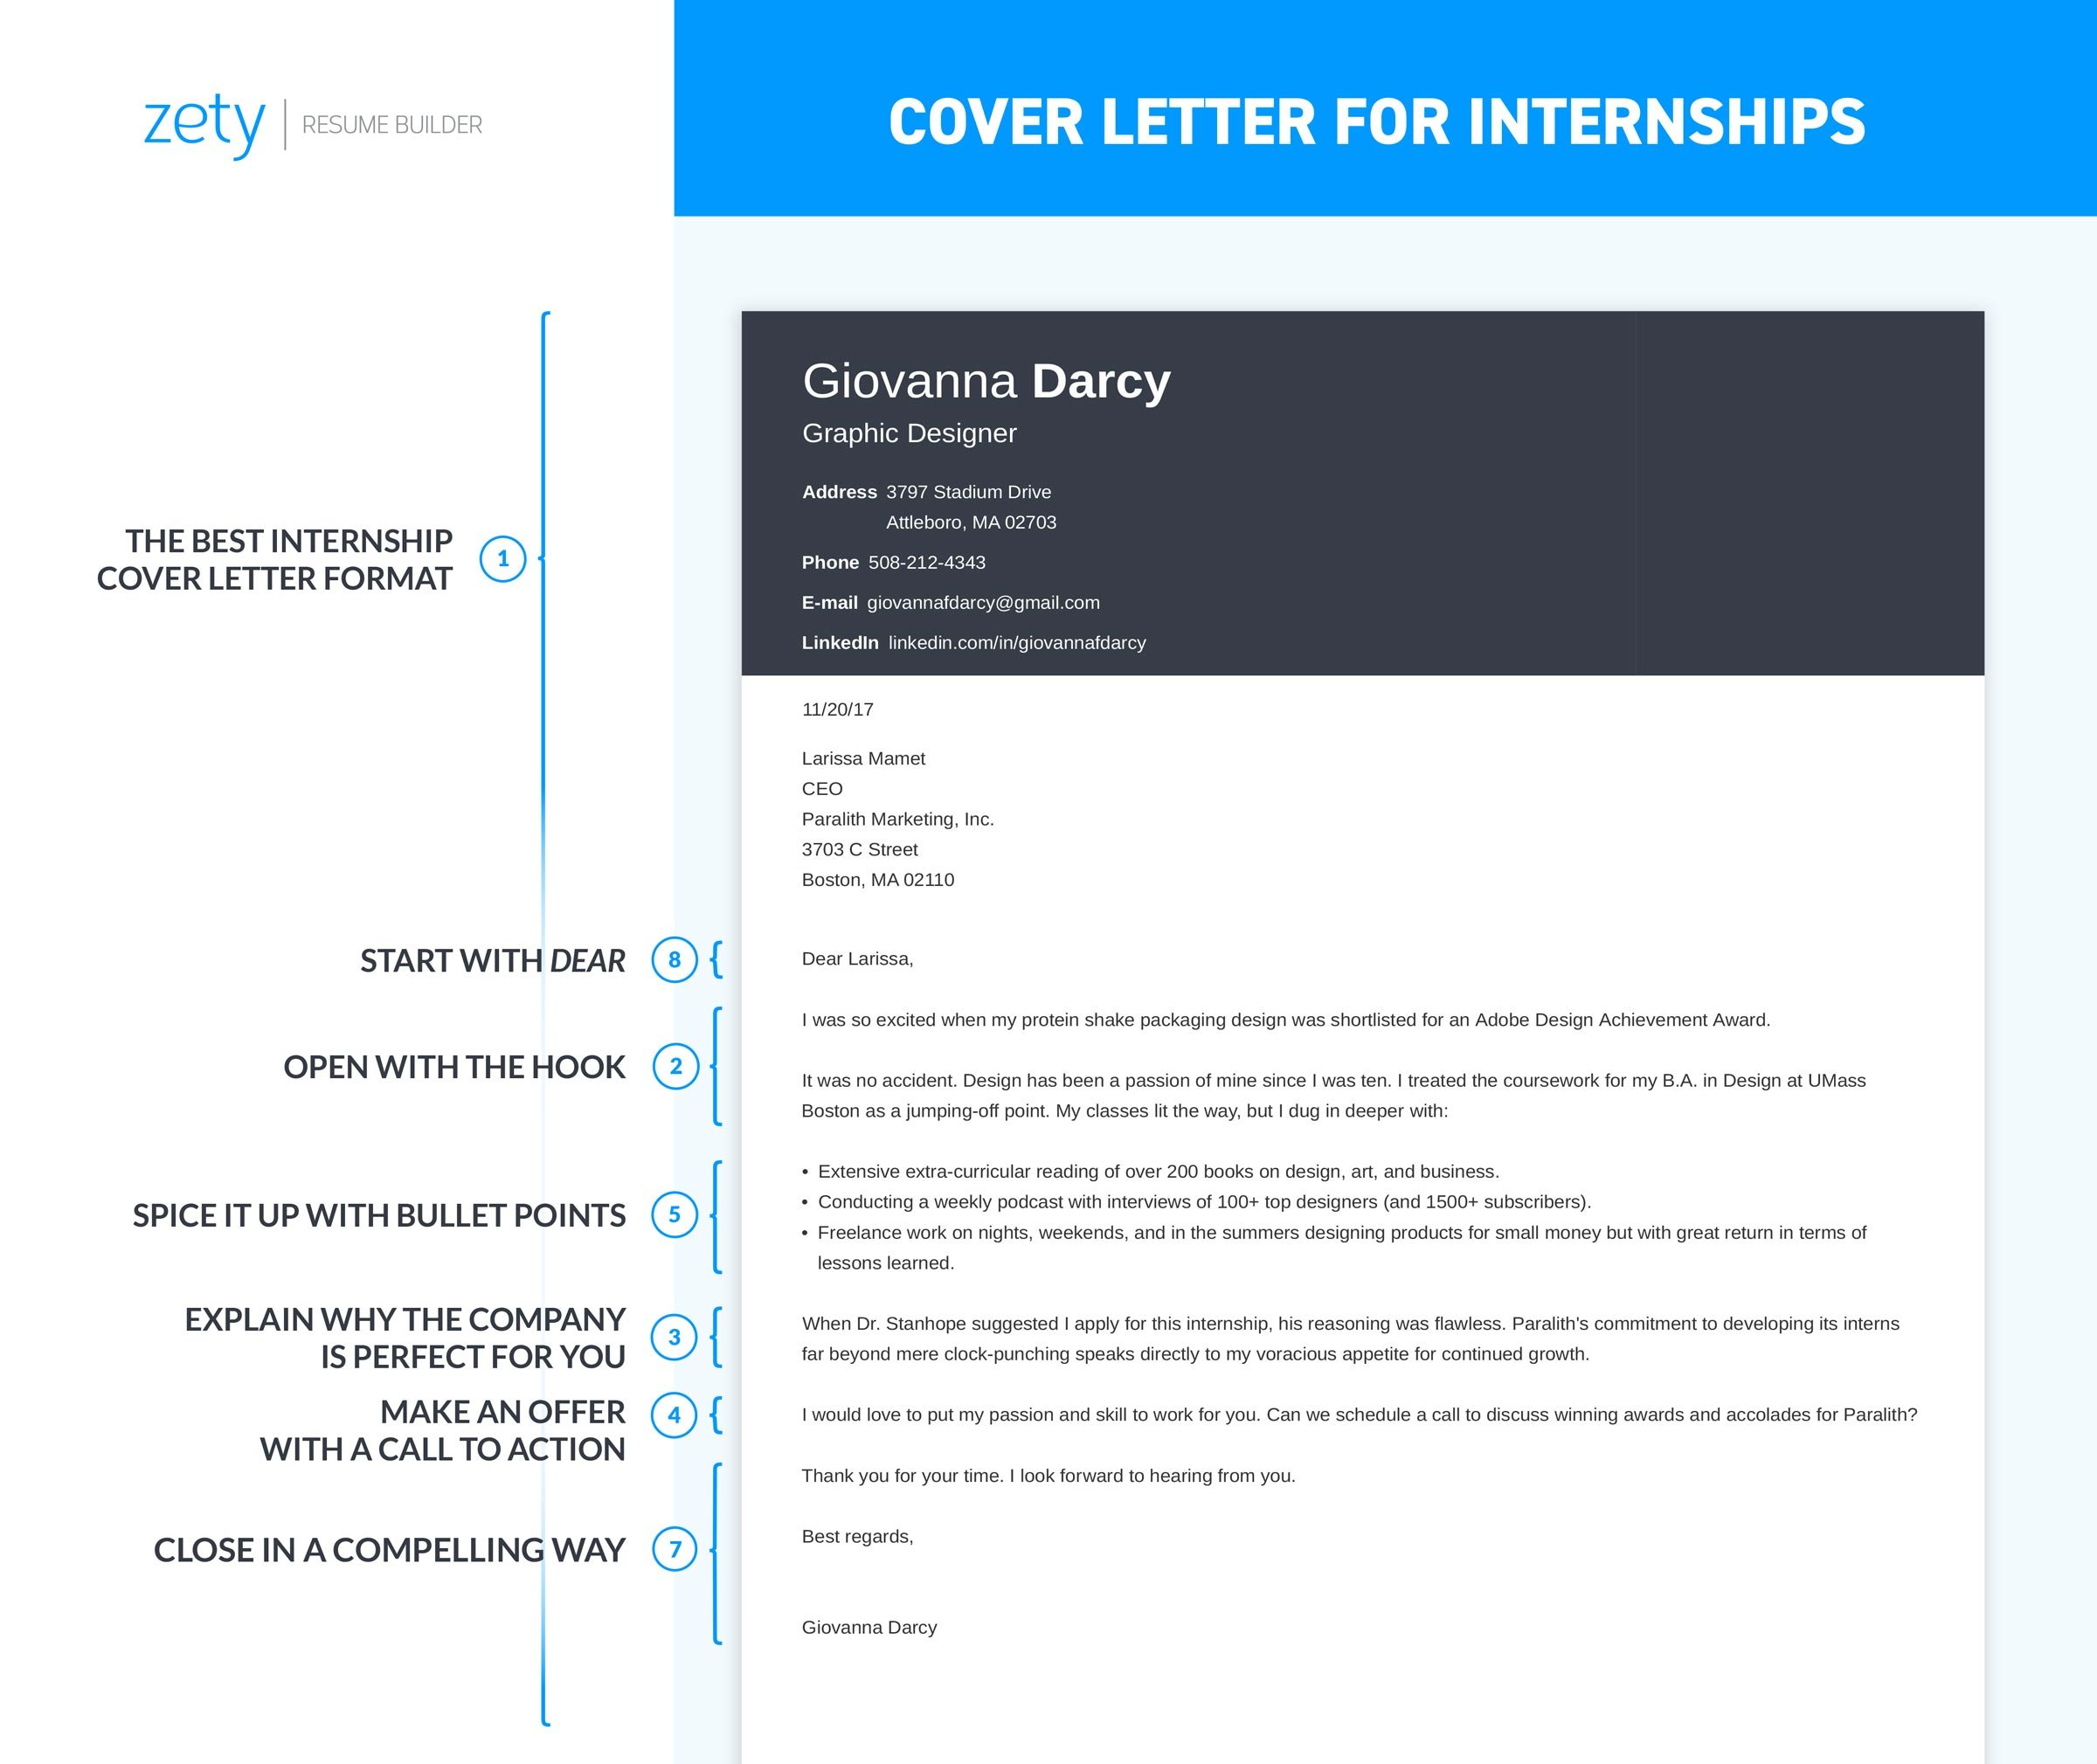 infographic about how to write a cover letter for internship - How To Write A Cover Letter For Internship